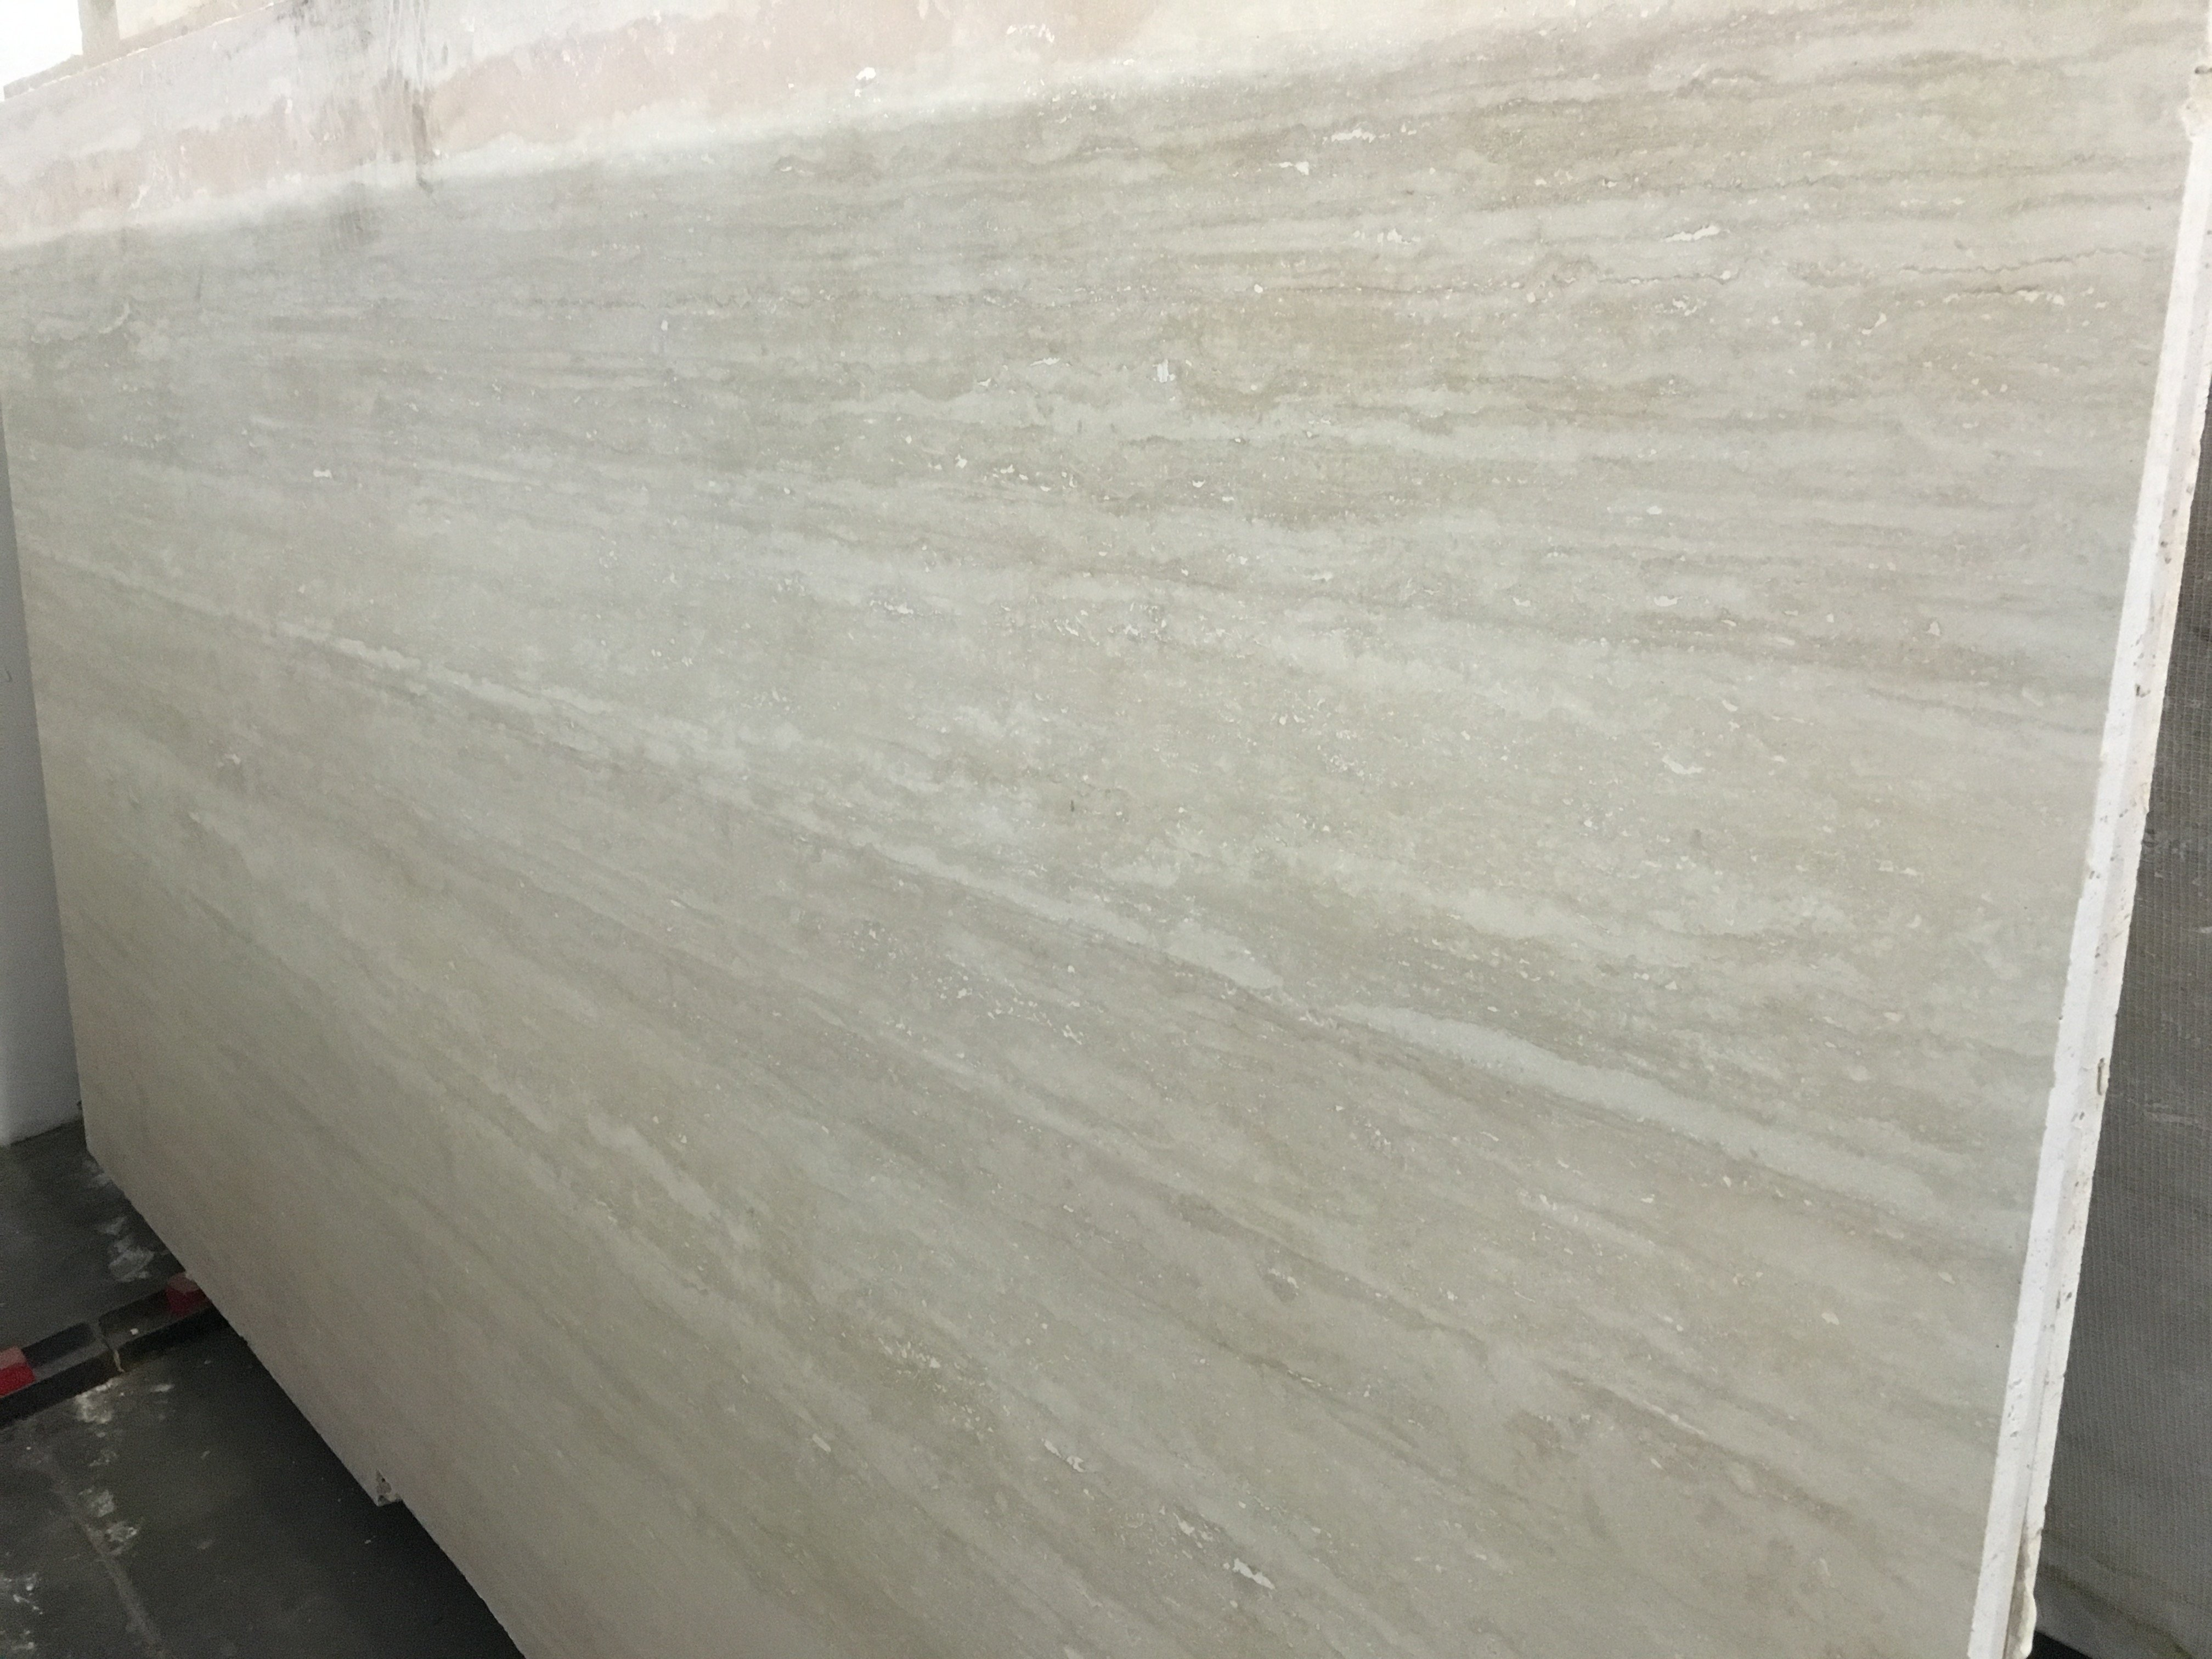 Honed Quartz Countertops Ivory Vein Cut Honed Travertine Slab Trendy Surfaces